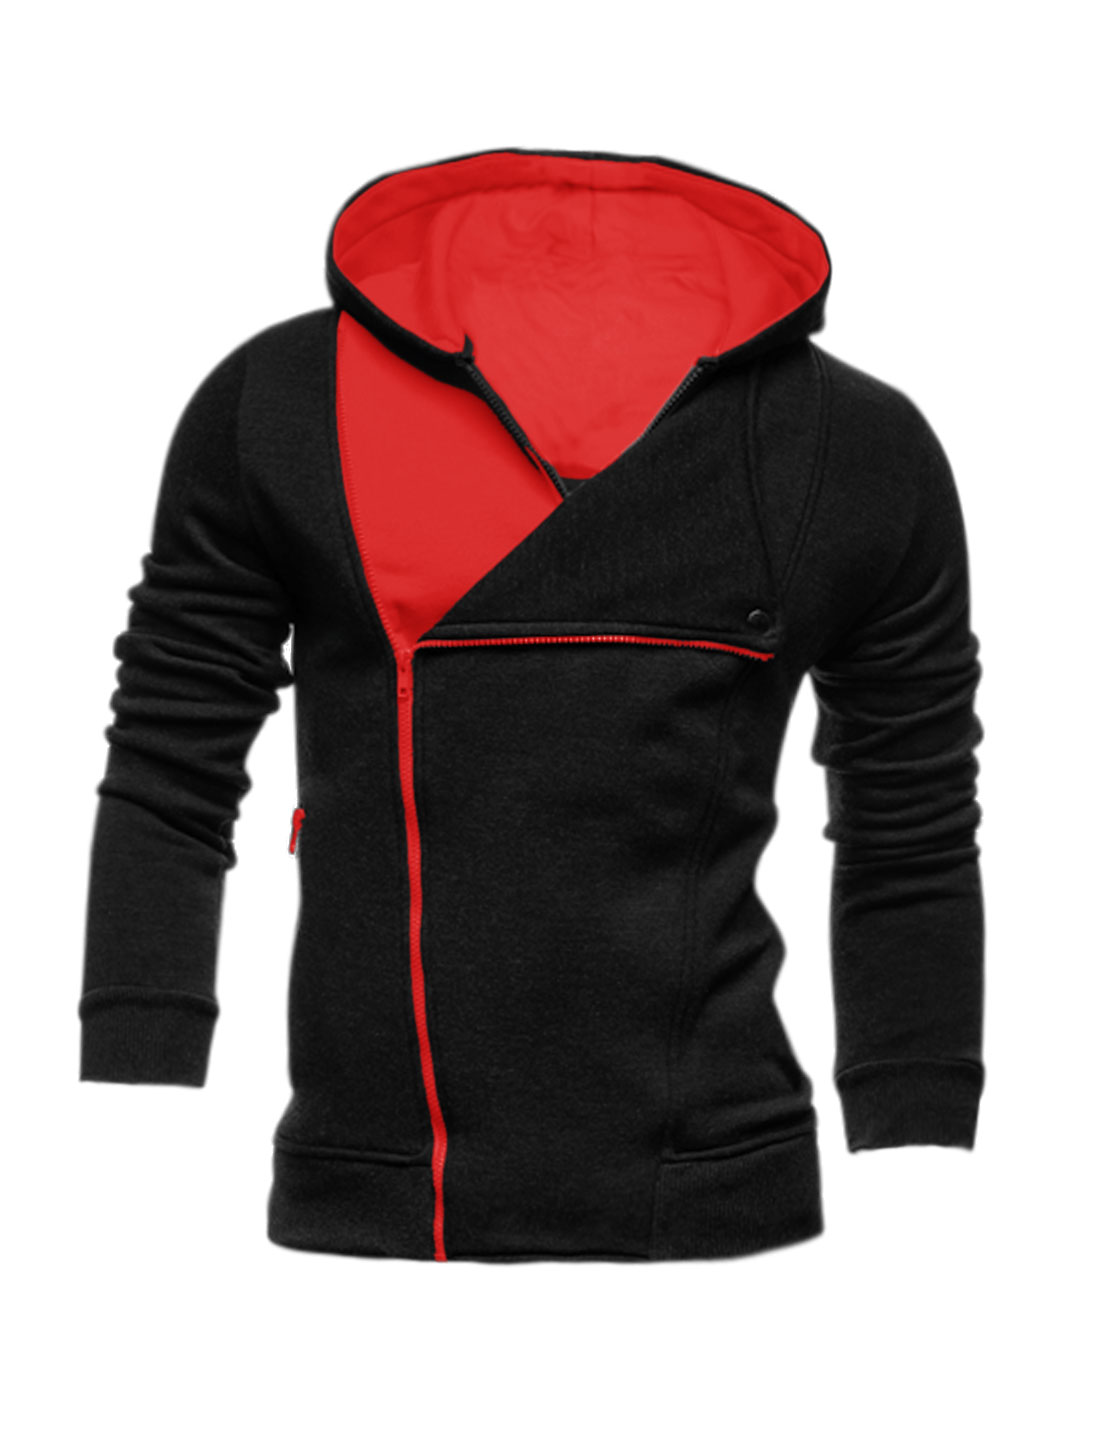 Men Inclined Zipper Layered Color Block Hooded Jacket Black M